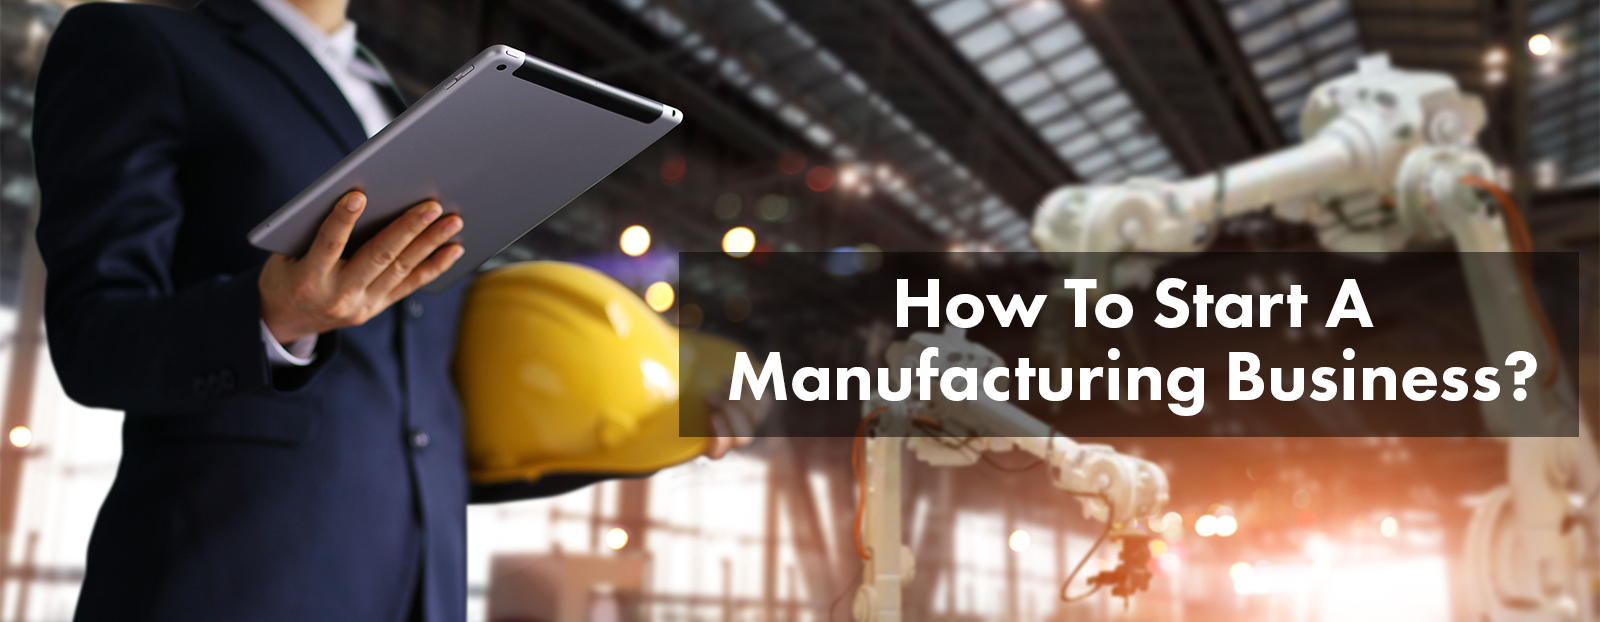 How To Start A Manufacturing Business?